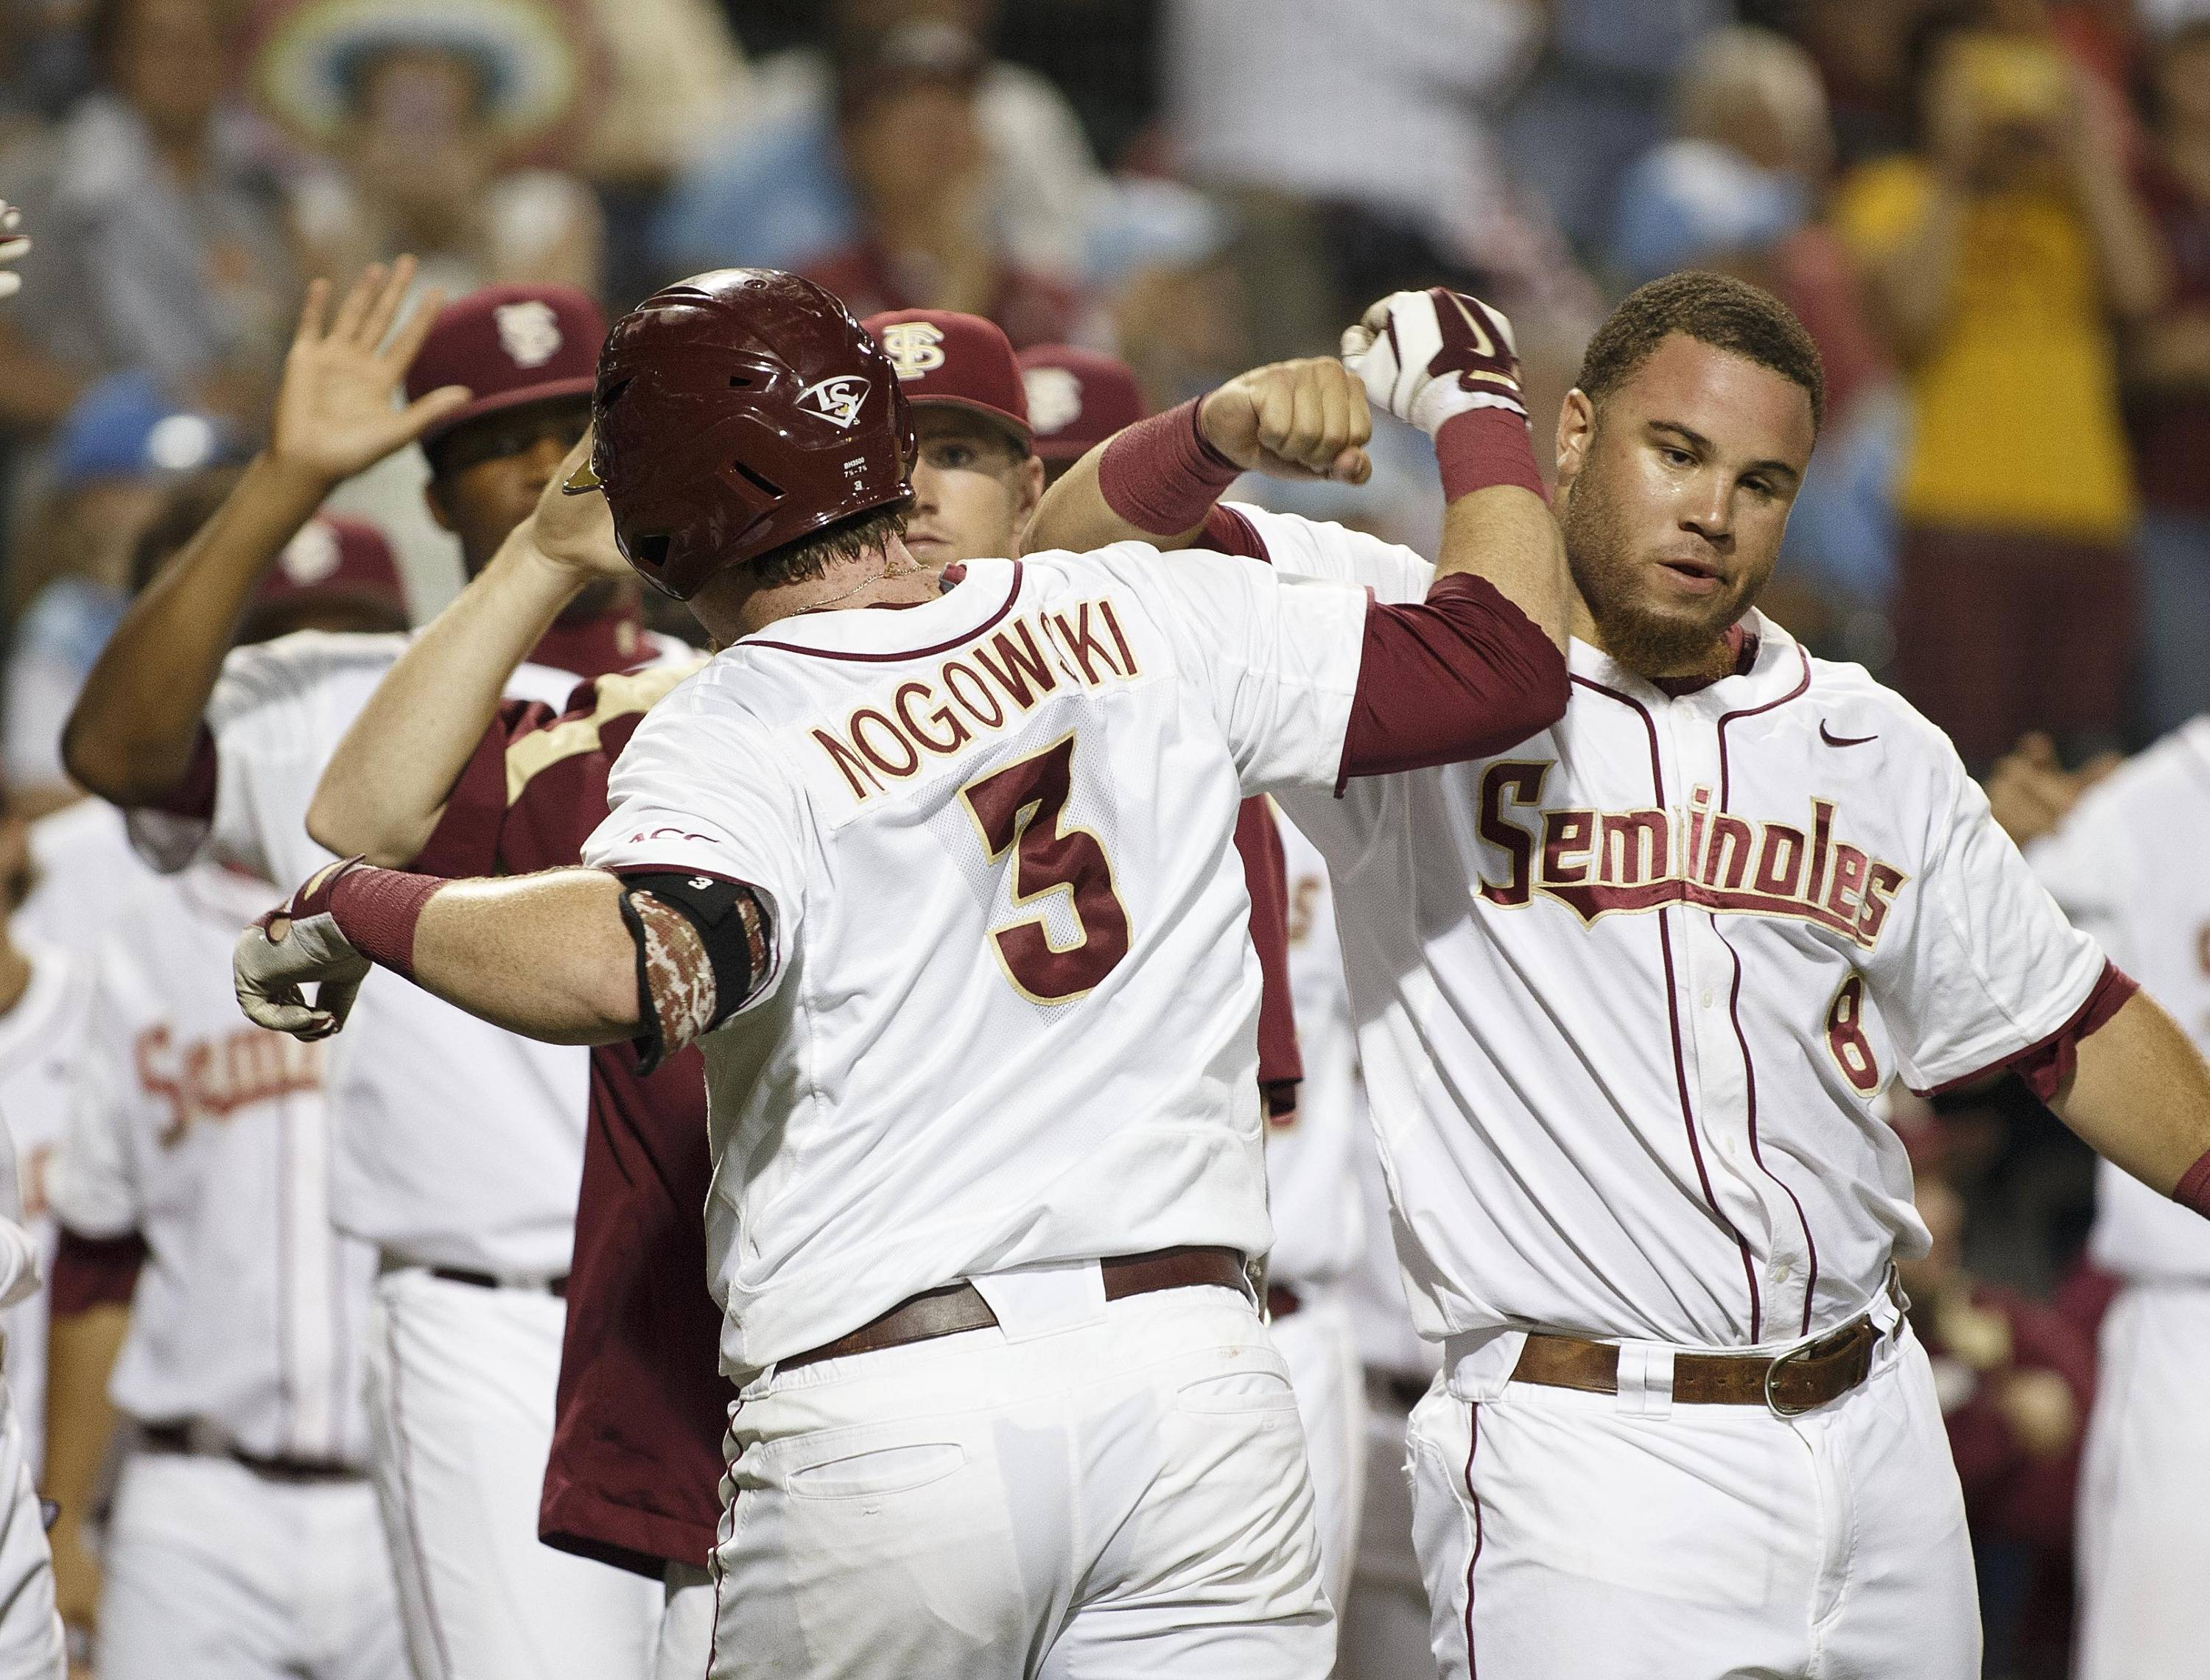 Florida State first baseman John Nogowski leads off the 7th inning with a home run and is greeted by Florida State outfielder DJ Stewart.